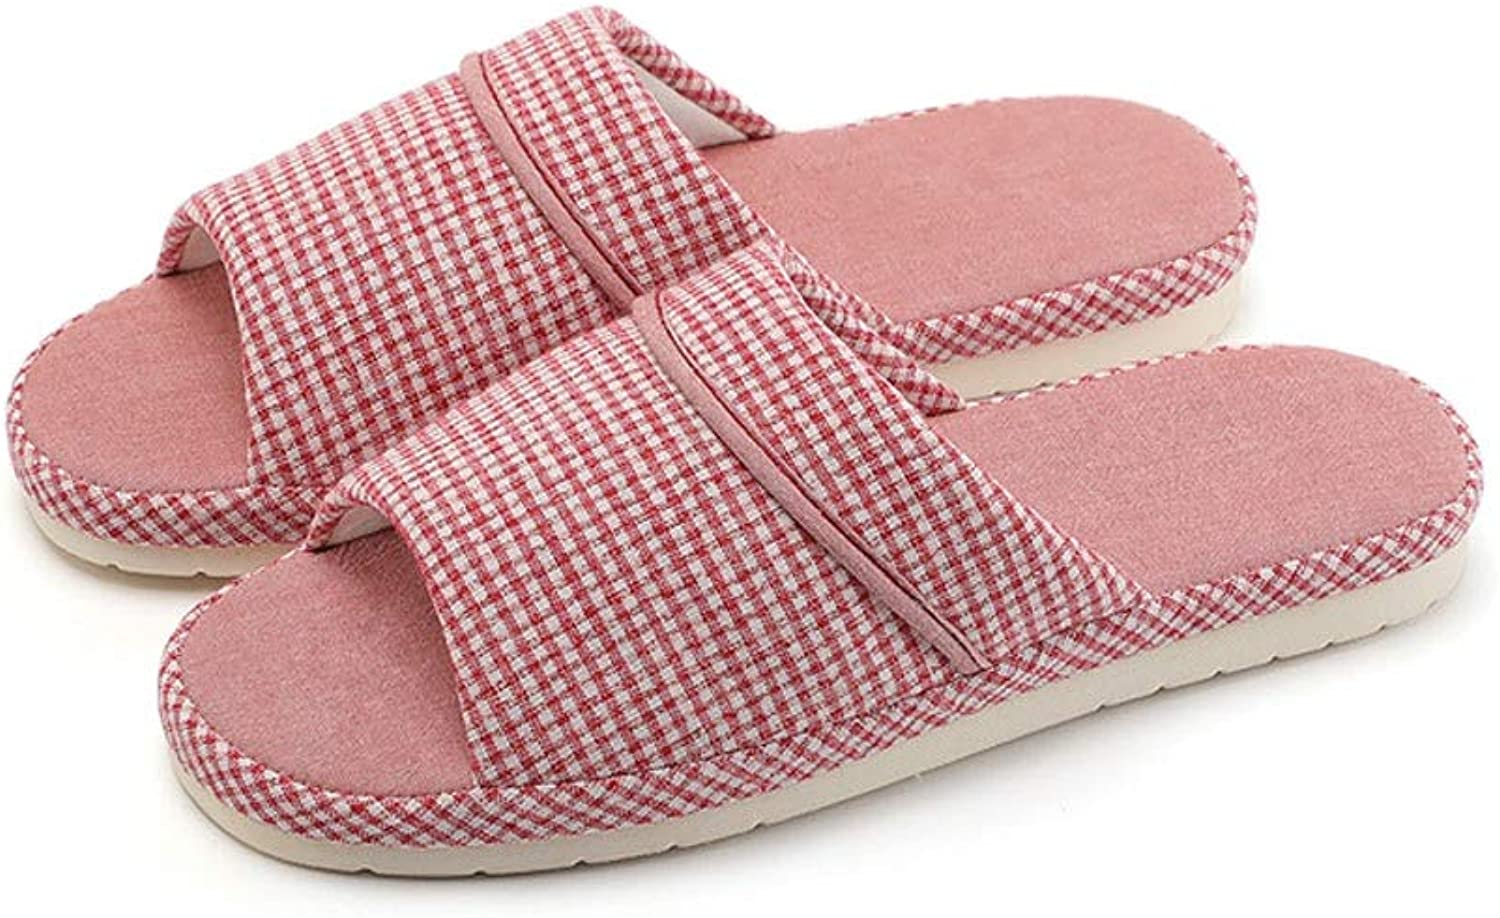 Zhiling flip Flop- Spring and Autumn Linen Slippers Women's Thick-Soled Four Seasons Home Indoor Non-Slip Cotton and Linen Drag Silent shoes Women's RED, Size   39-40code